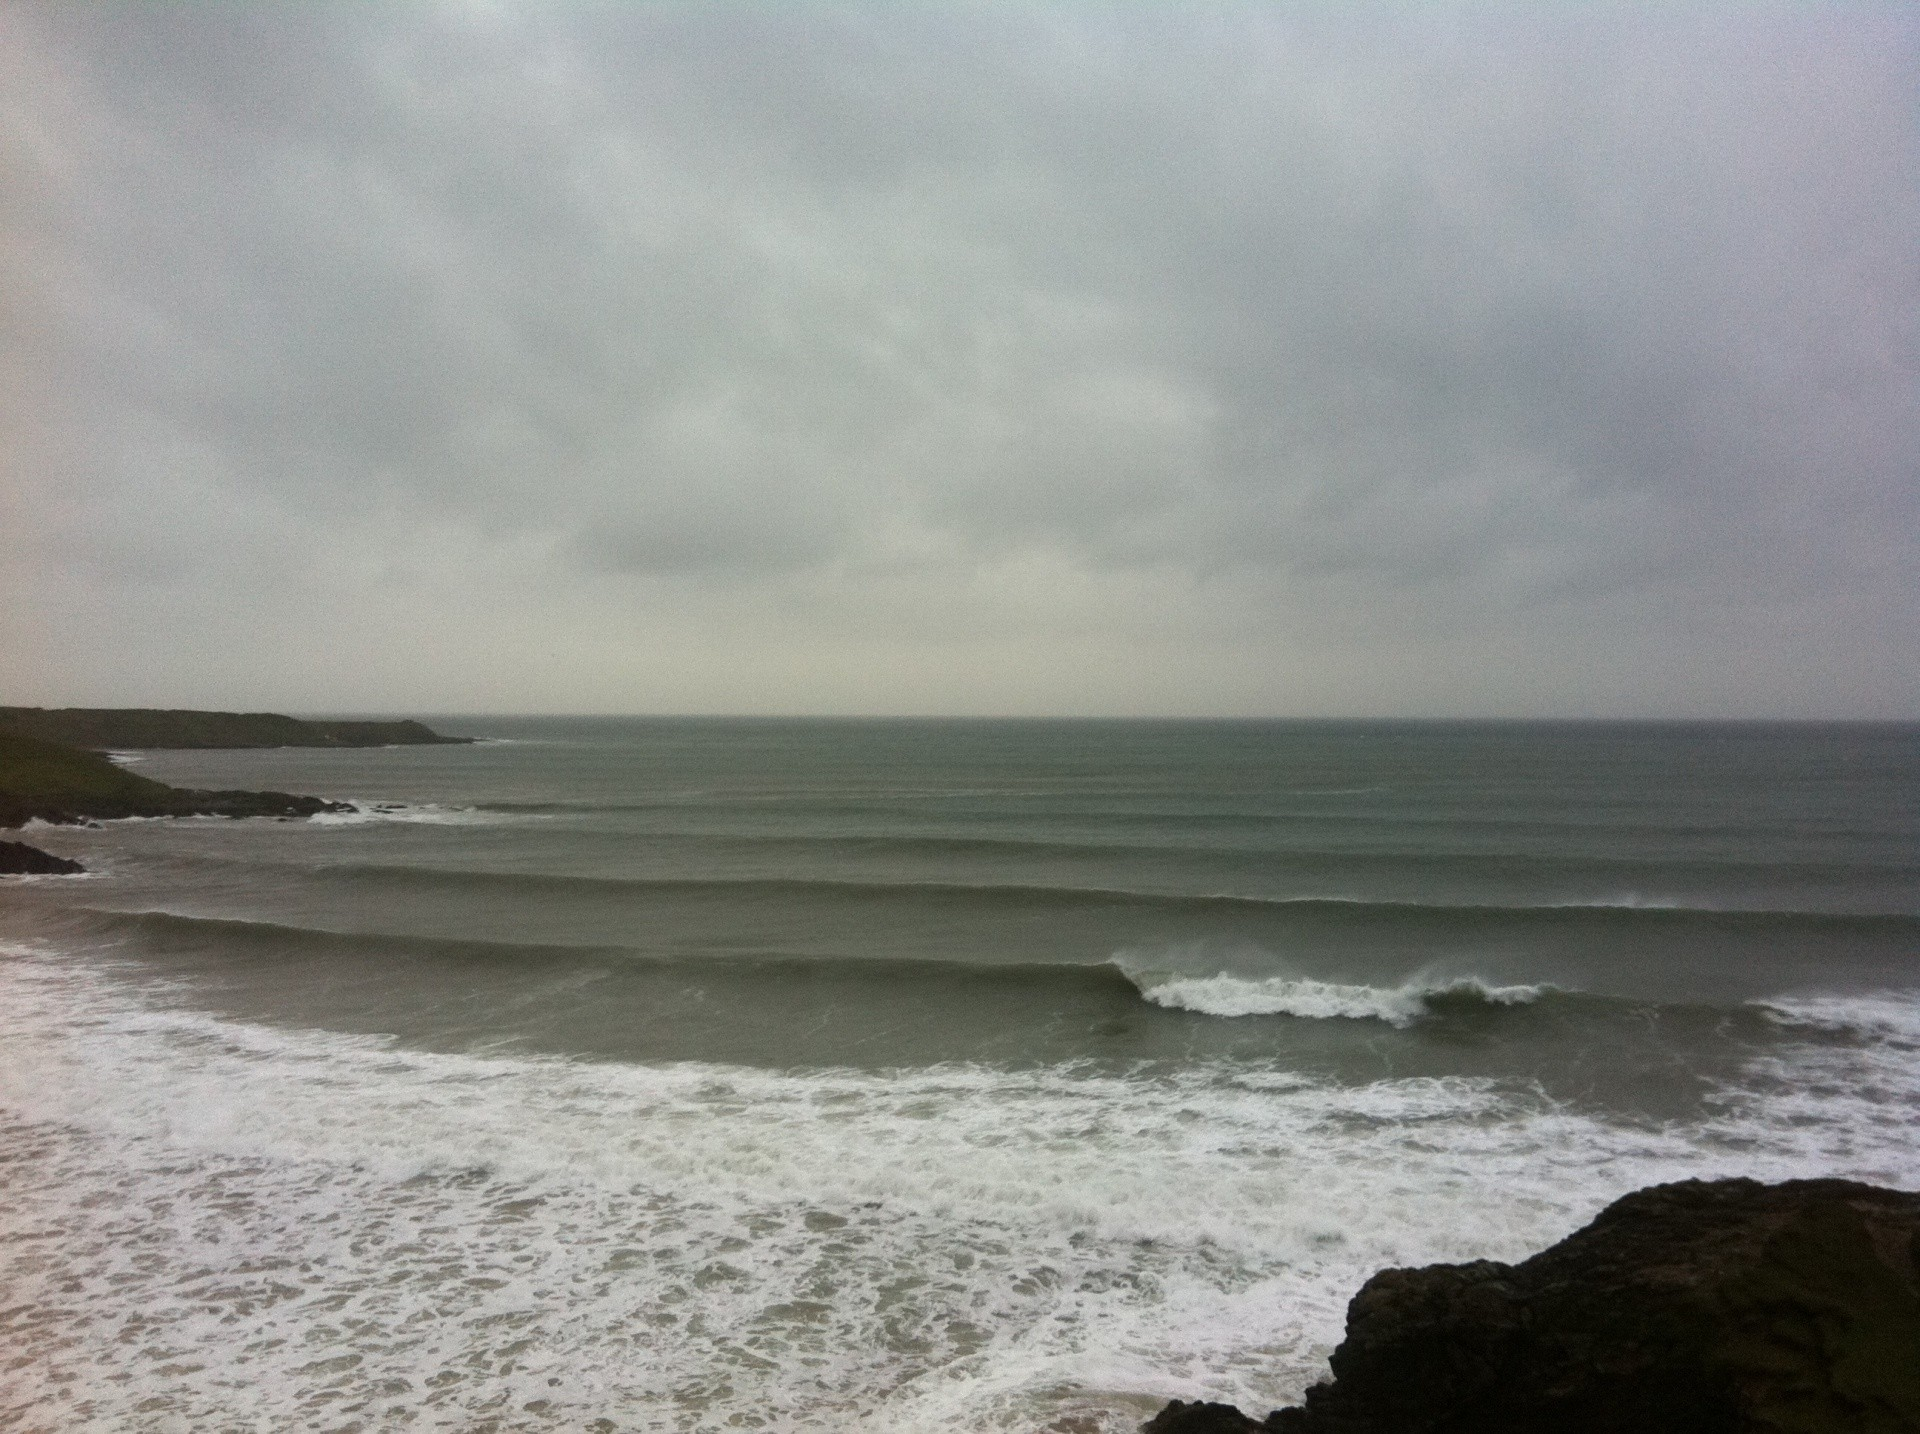 dhoppe123's photo of Hells Mouth (Porth Neigwl)